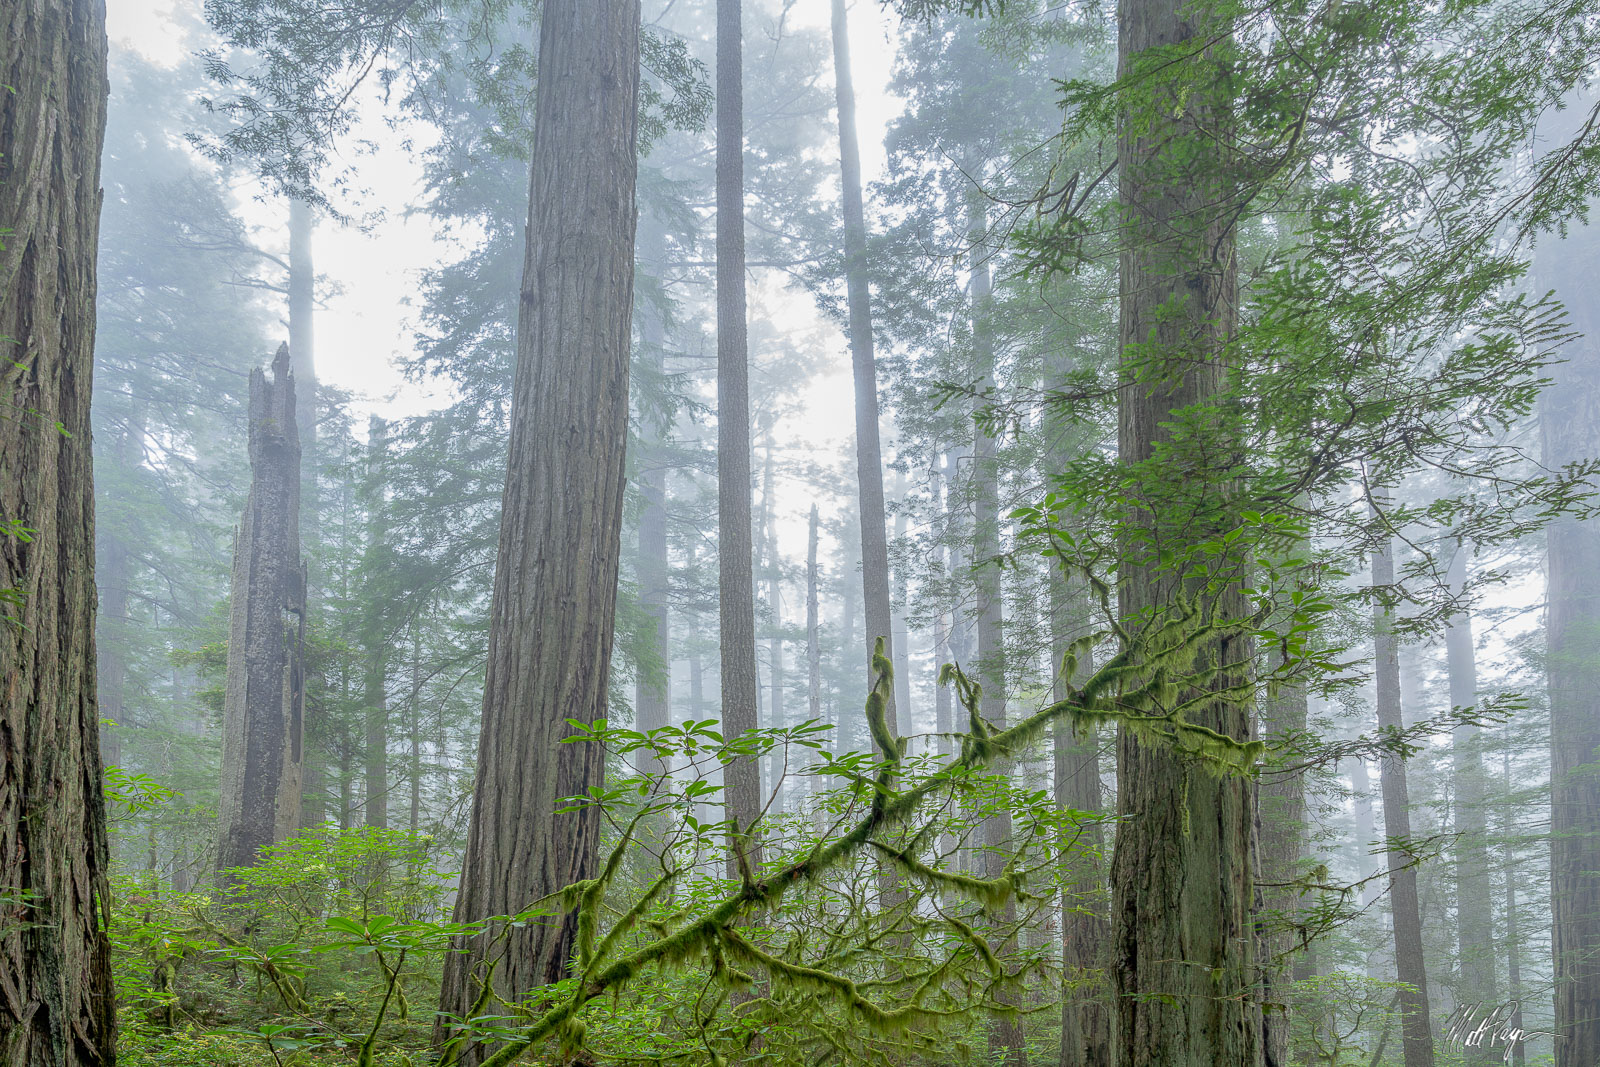 On a recent trip to the Redwoods Forests of California, my friend Kane and I spent countless days wandering the woods to find...